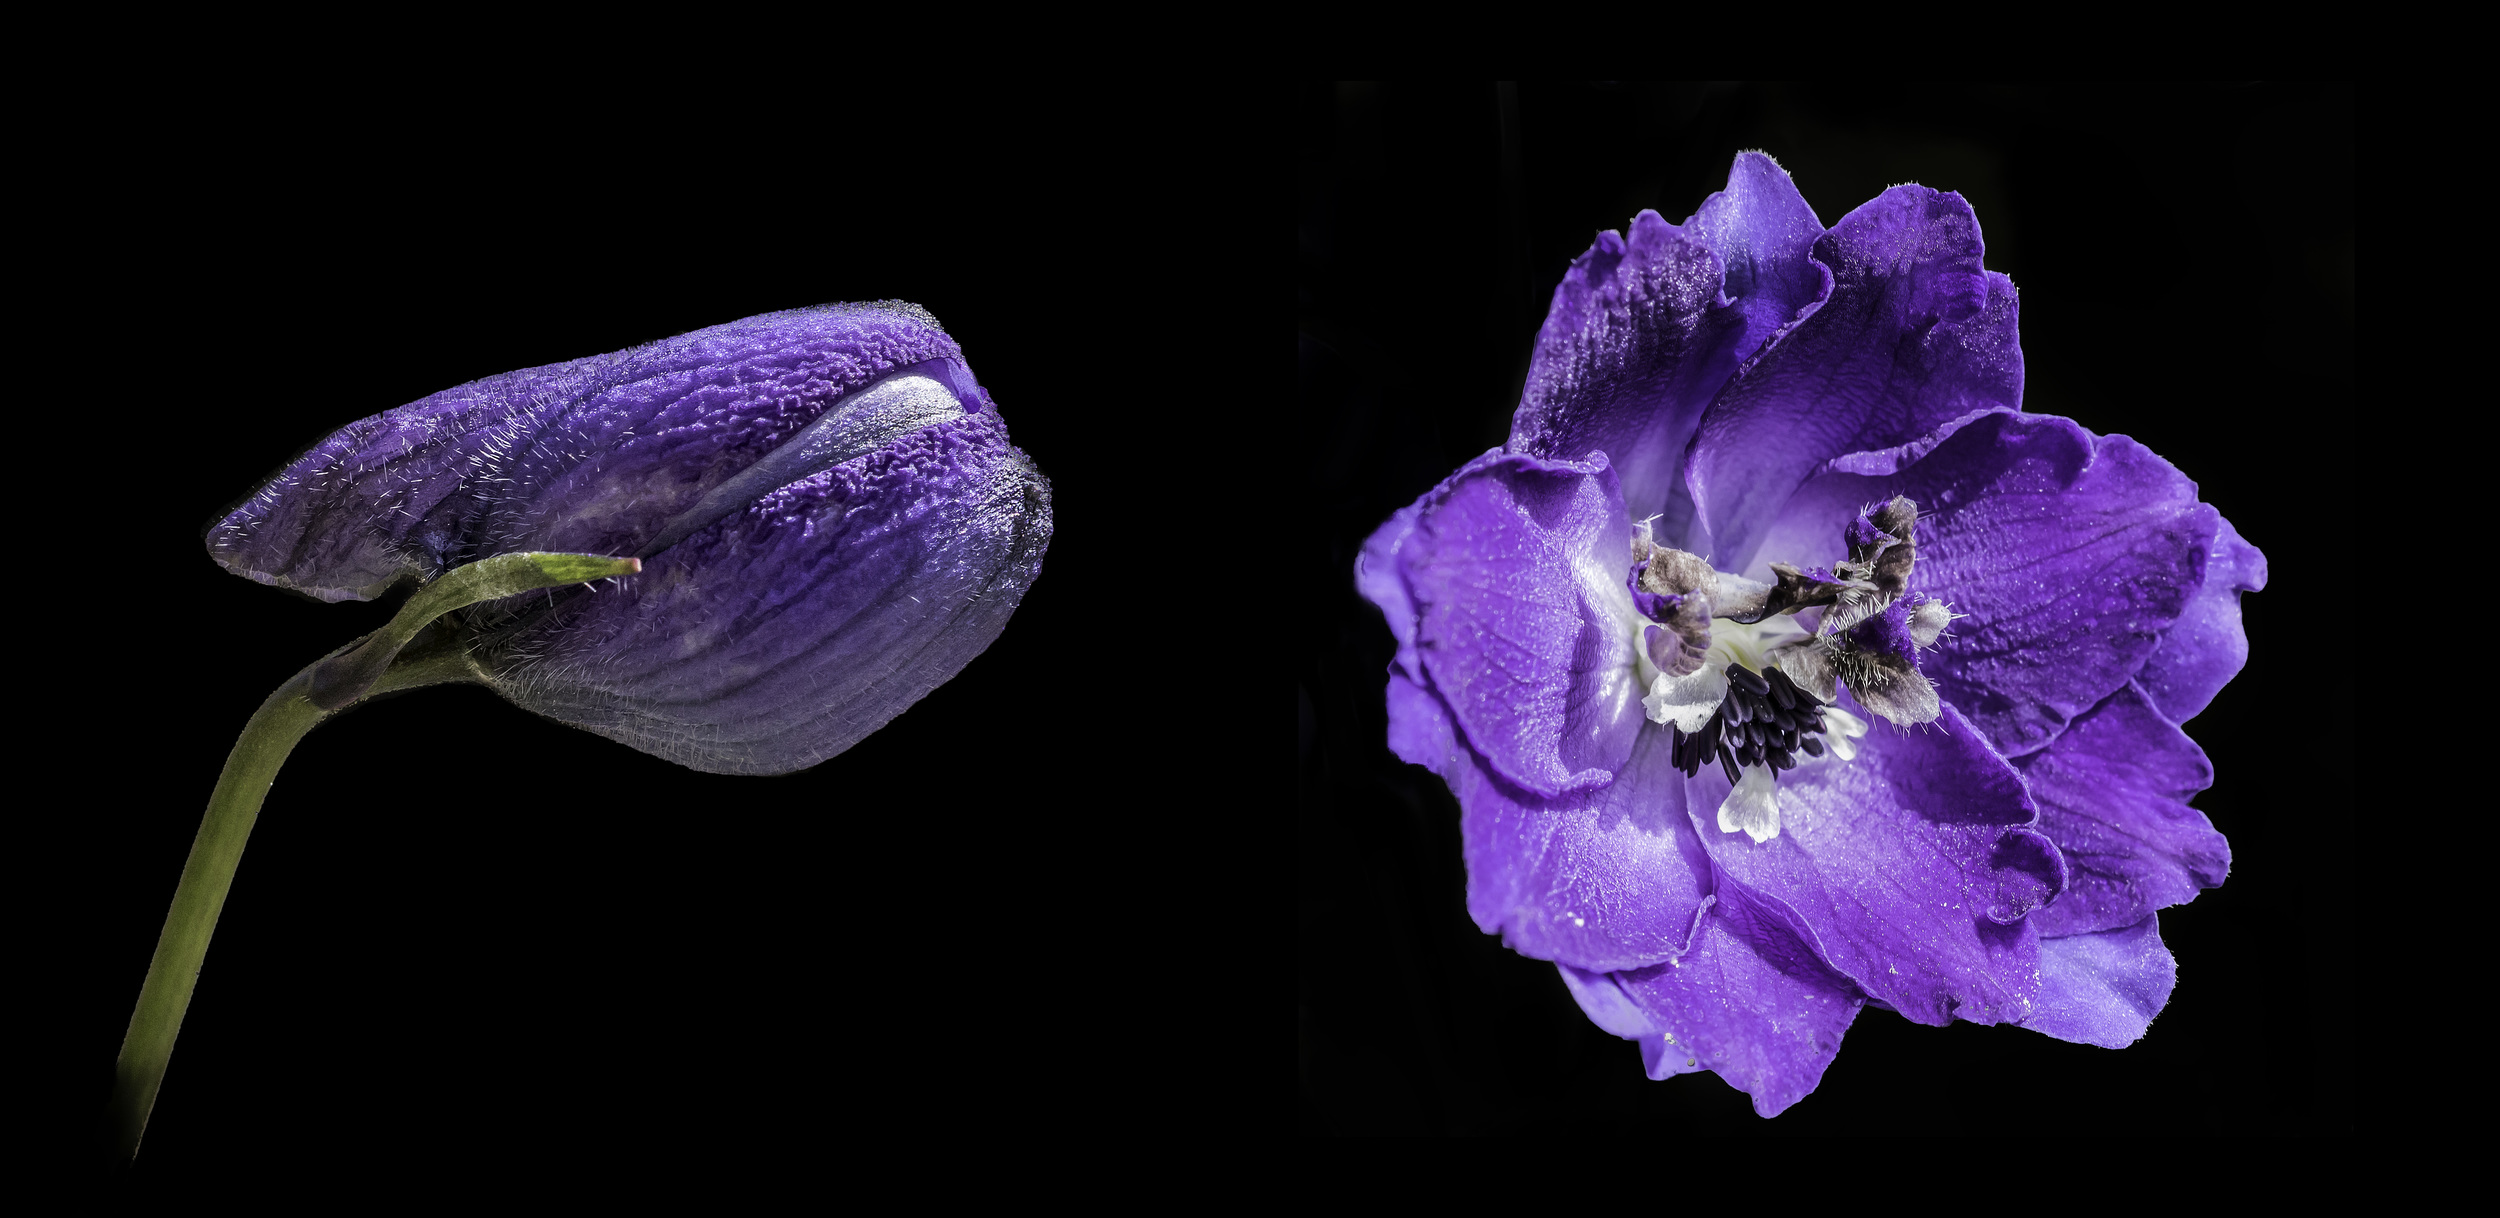 Delphinium flower bud and open (composite)